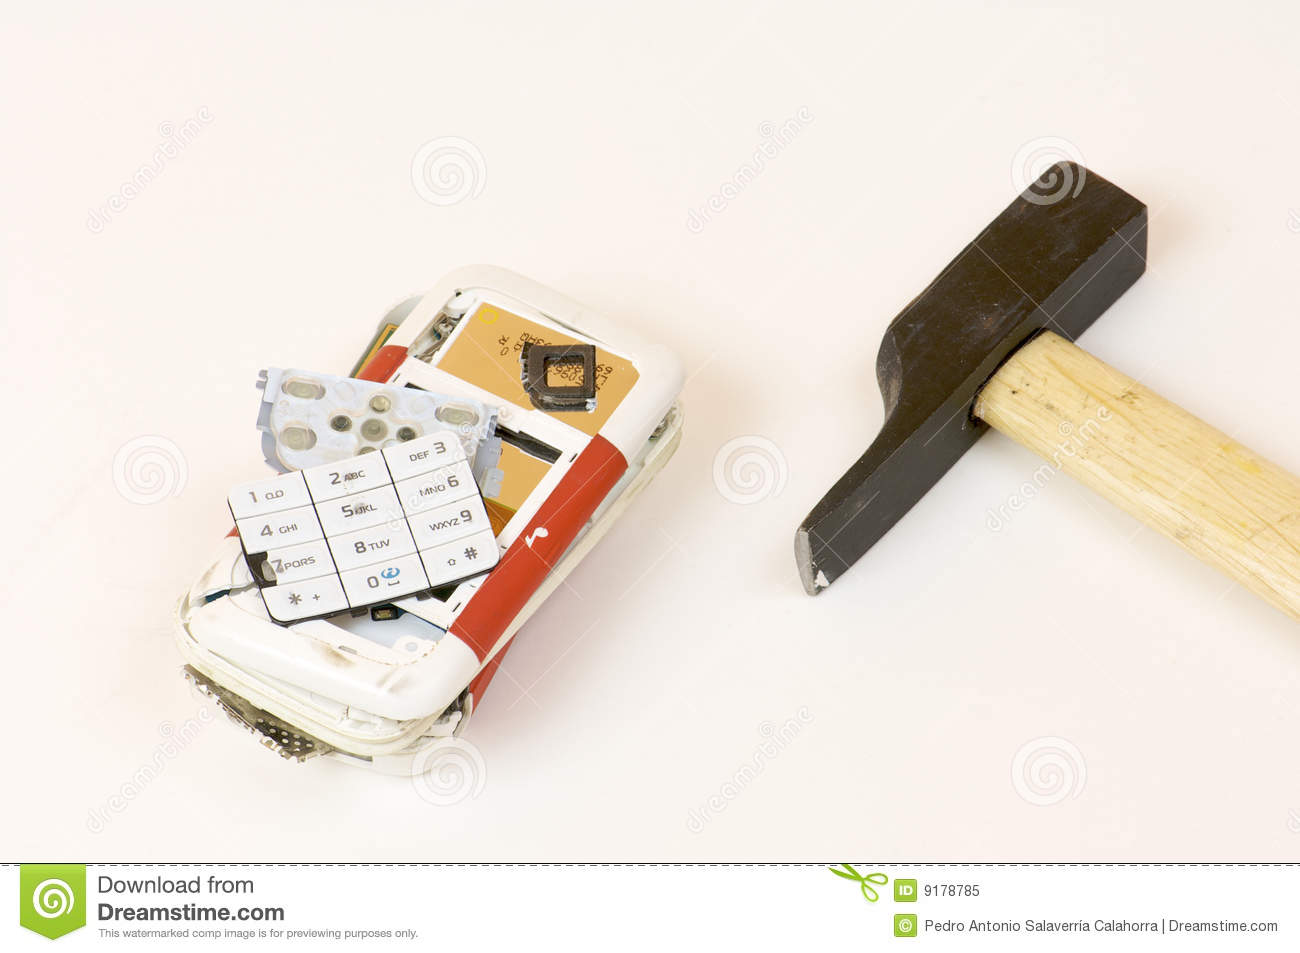 Broken cell phone and hammer